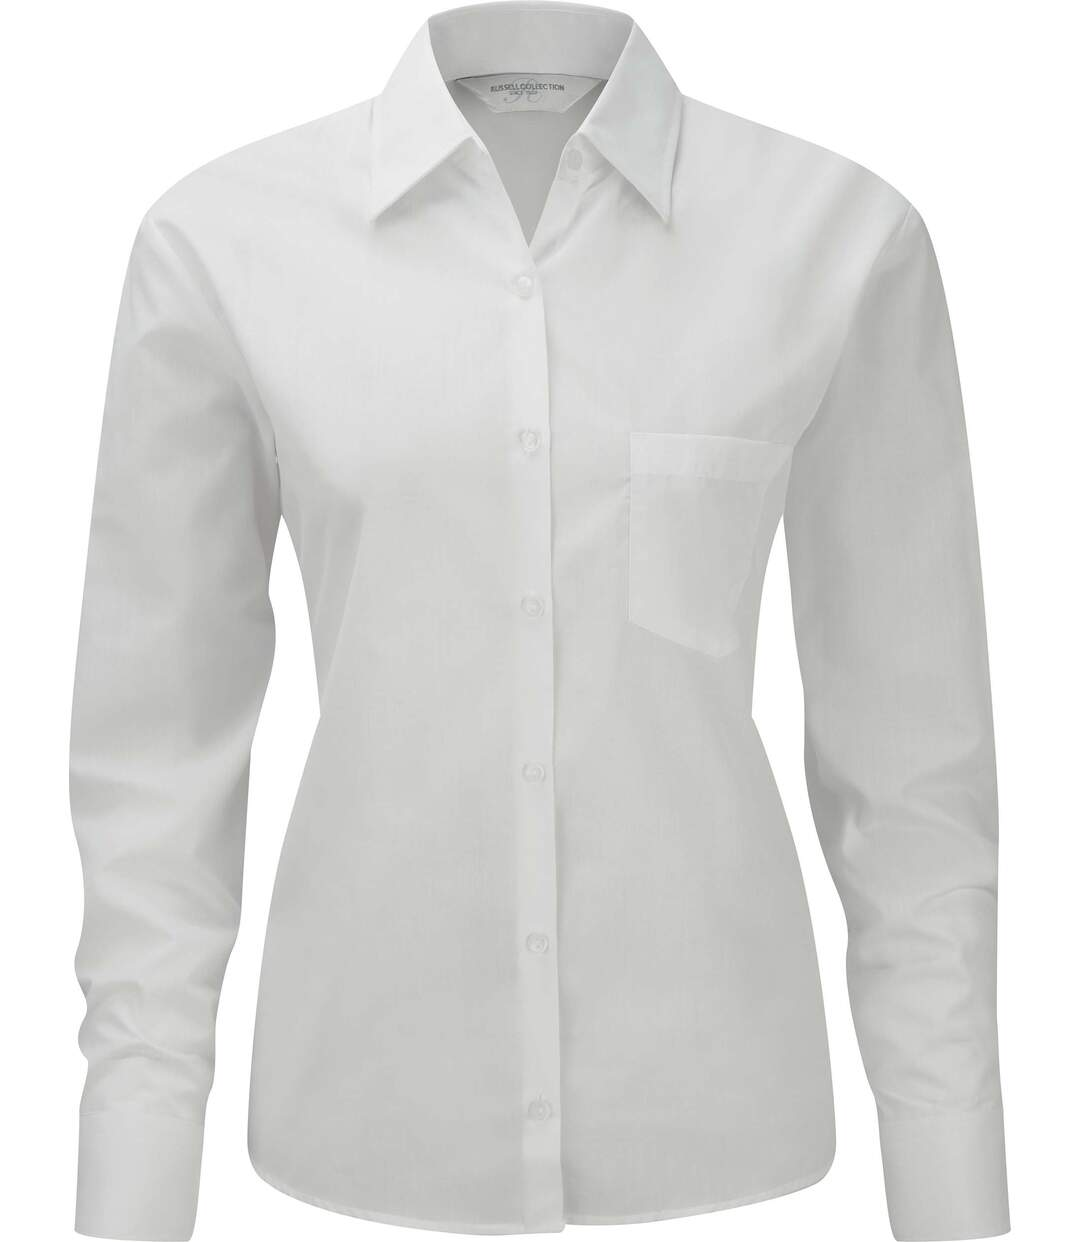 Chemise manches longues popeline